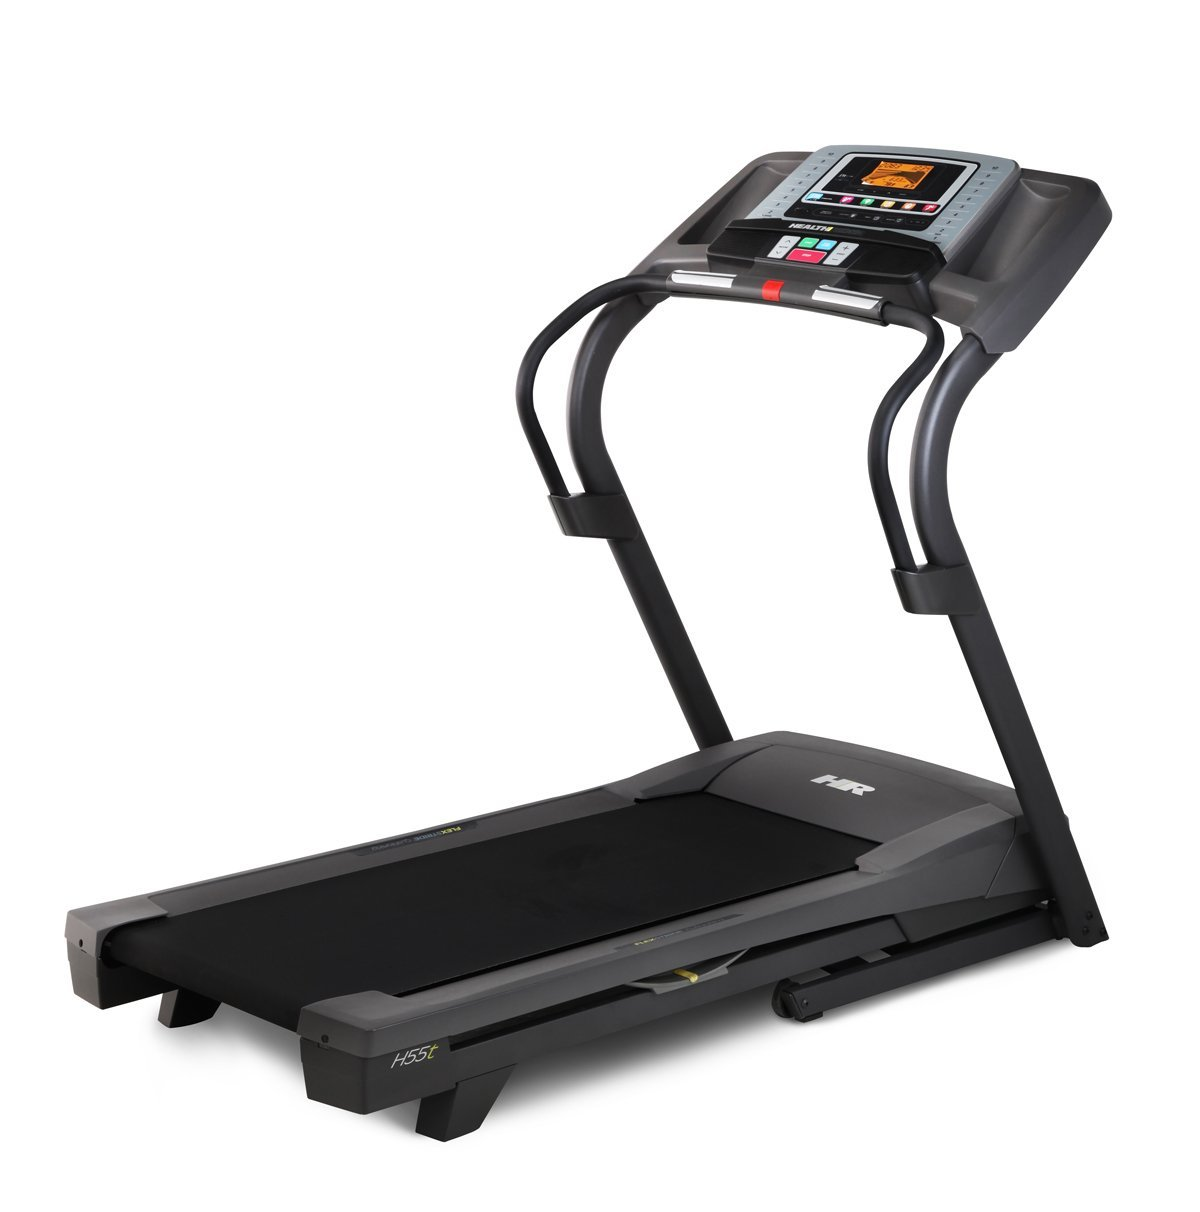 The HealthRider H55t Treadmill Review – Is it Time To Buy One?